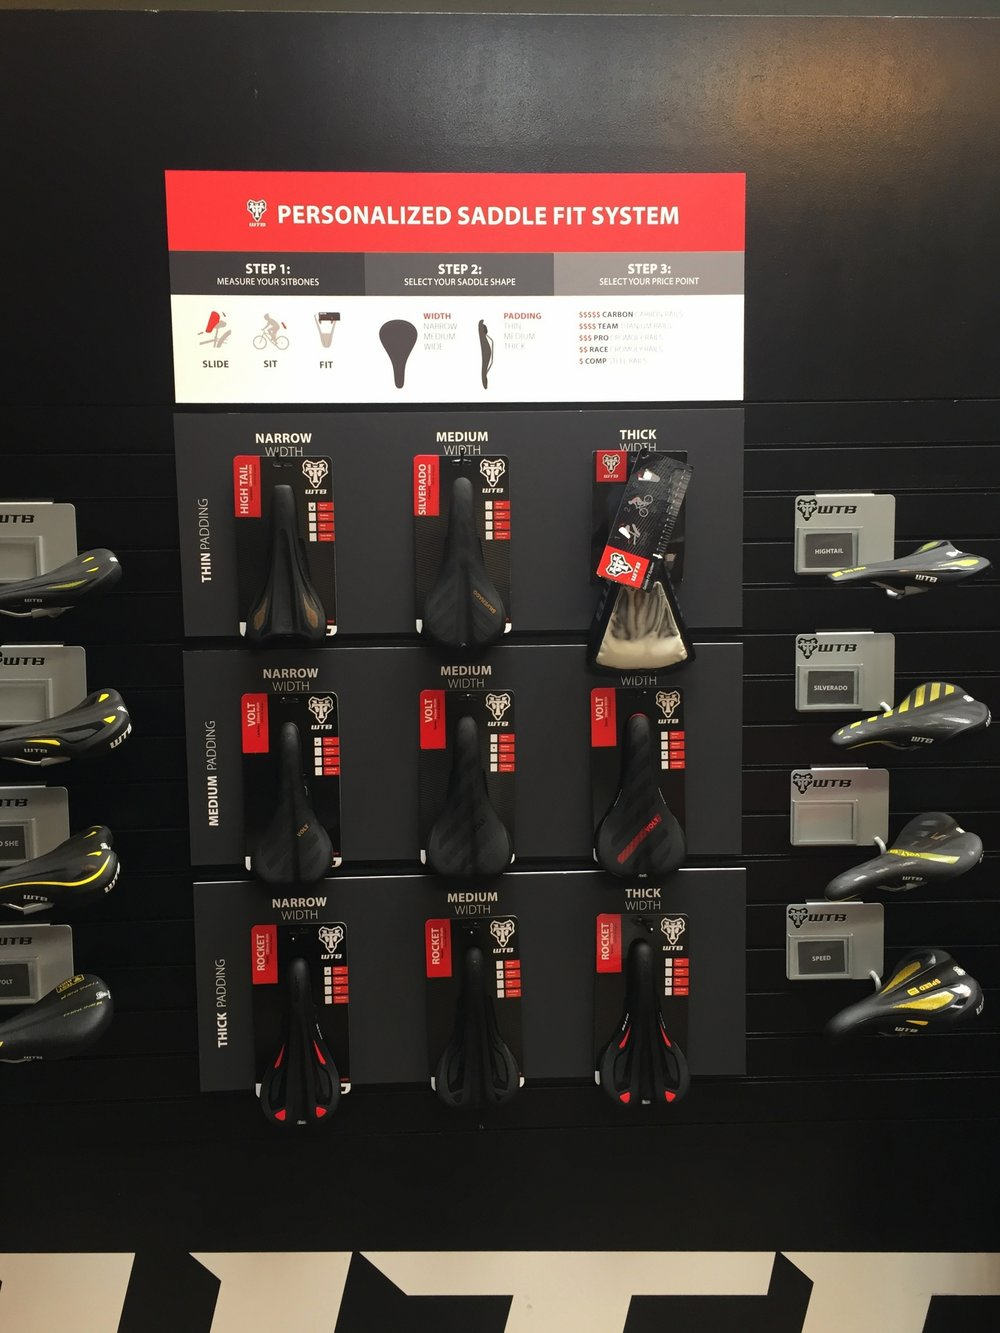 Saddle Display - WTB wanted to easily display their saddles in an organized way so their consumer could quickly determine types of saddle padding and widths.